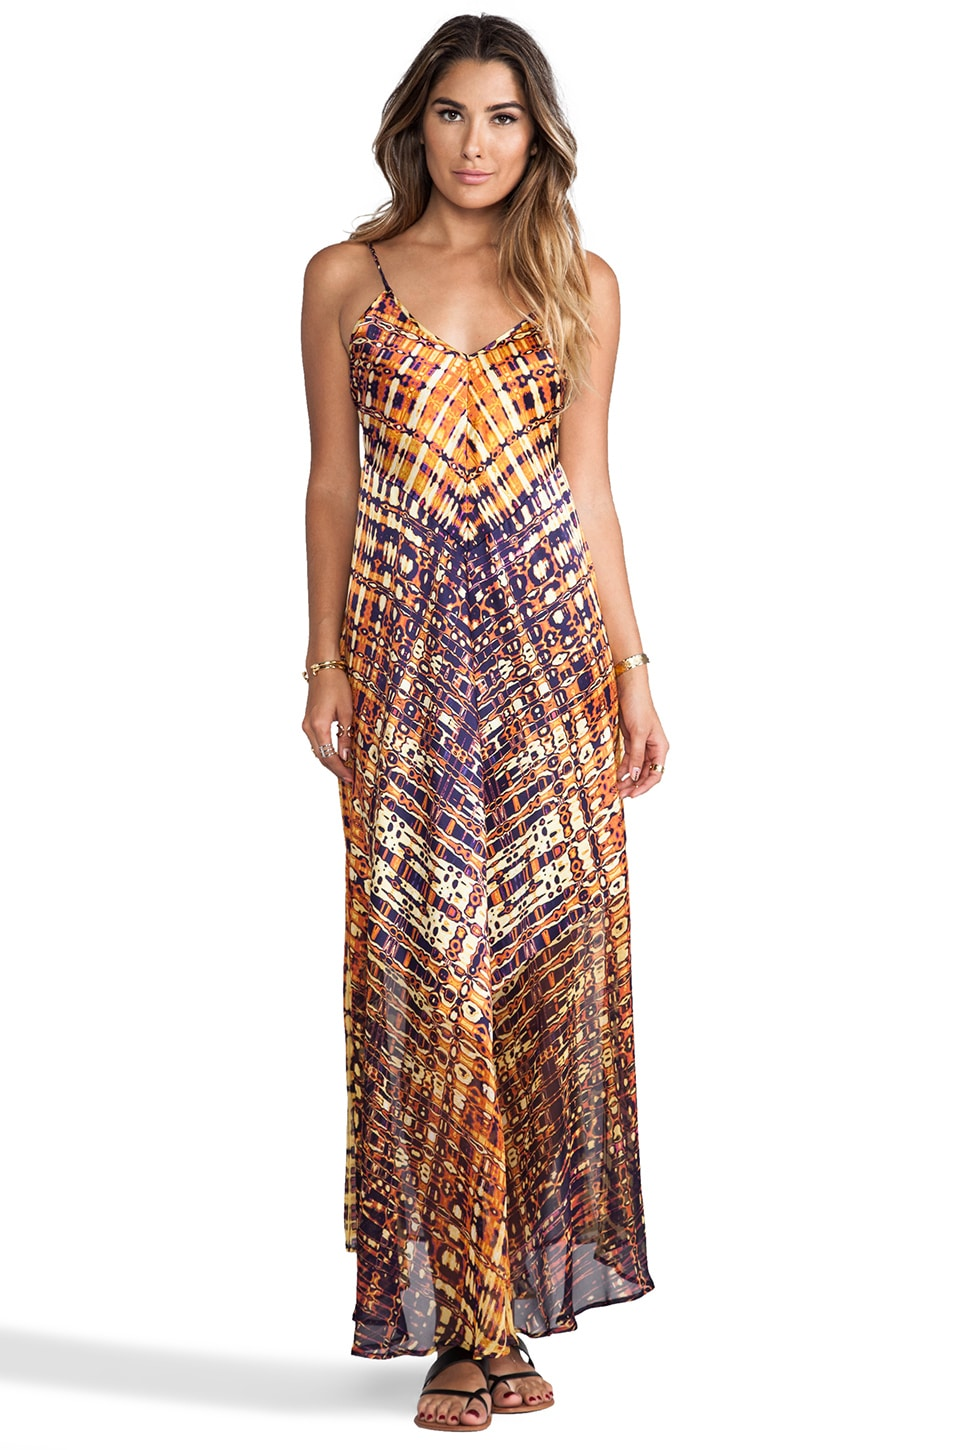 Twelfth Street By Cynthia Vincent Braided Strap Maxi in Venice Beach